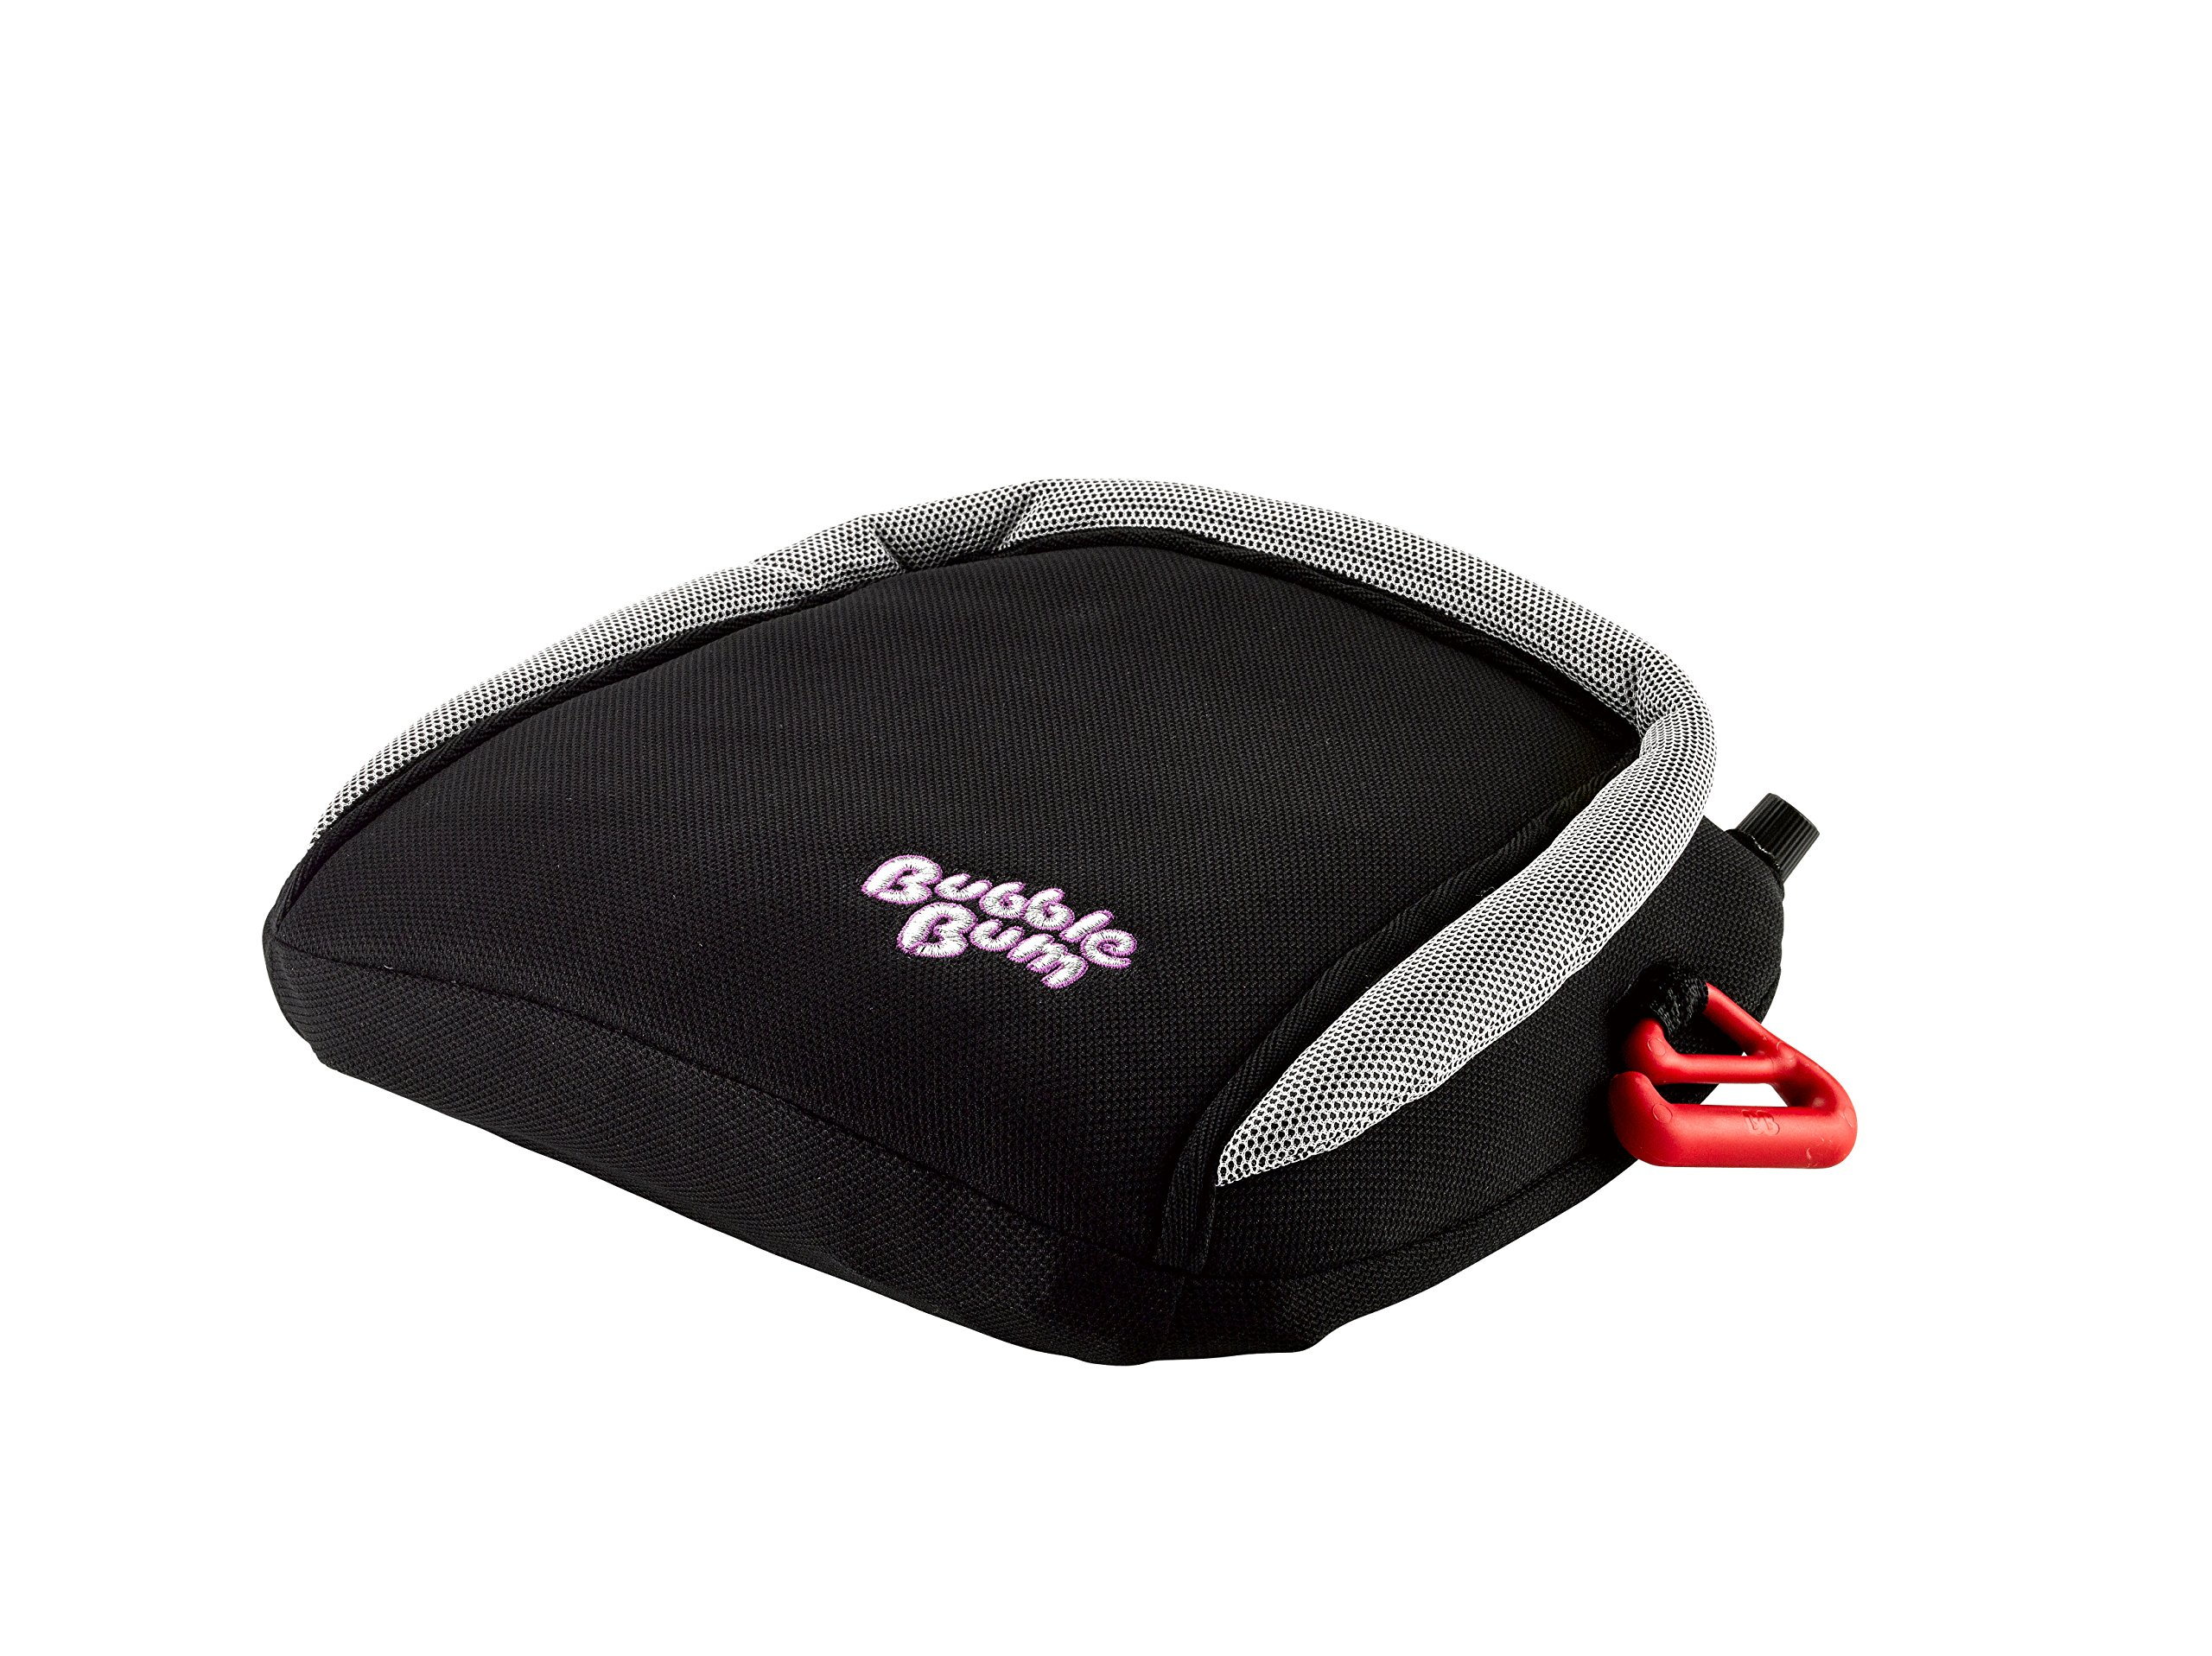 BubbleBum Inflatable Travel Car Booster Seat, Group 2/3, Black  The Award Winning BubbleBum Car Booster Seat The Inflatable, portable & safe booster seat for children aged 4 - 11, 15 - 36kg (with the provision of a vehicle headrest) Approved to the EU Safety Standard R44.04 for both Groups 2 and 3. Dimension - When inflated the seat measures 11 x11 x 4.5 Inches.  When deflated the seat measures 11.8 x 5.9 x 3.9 Inches.  Tip - ideal as you can now fit three across the back 1